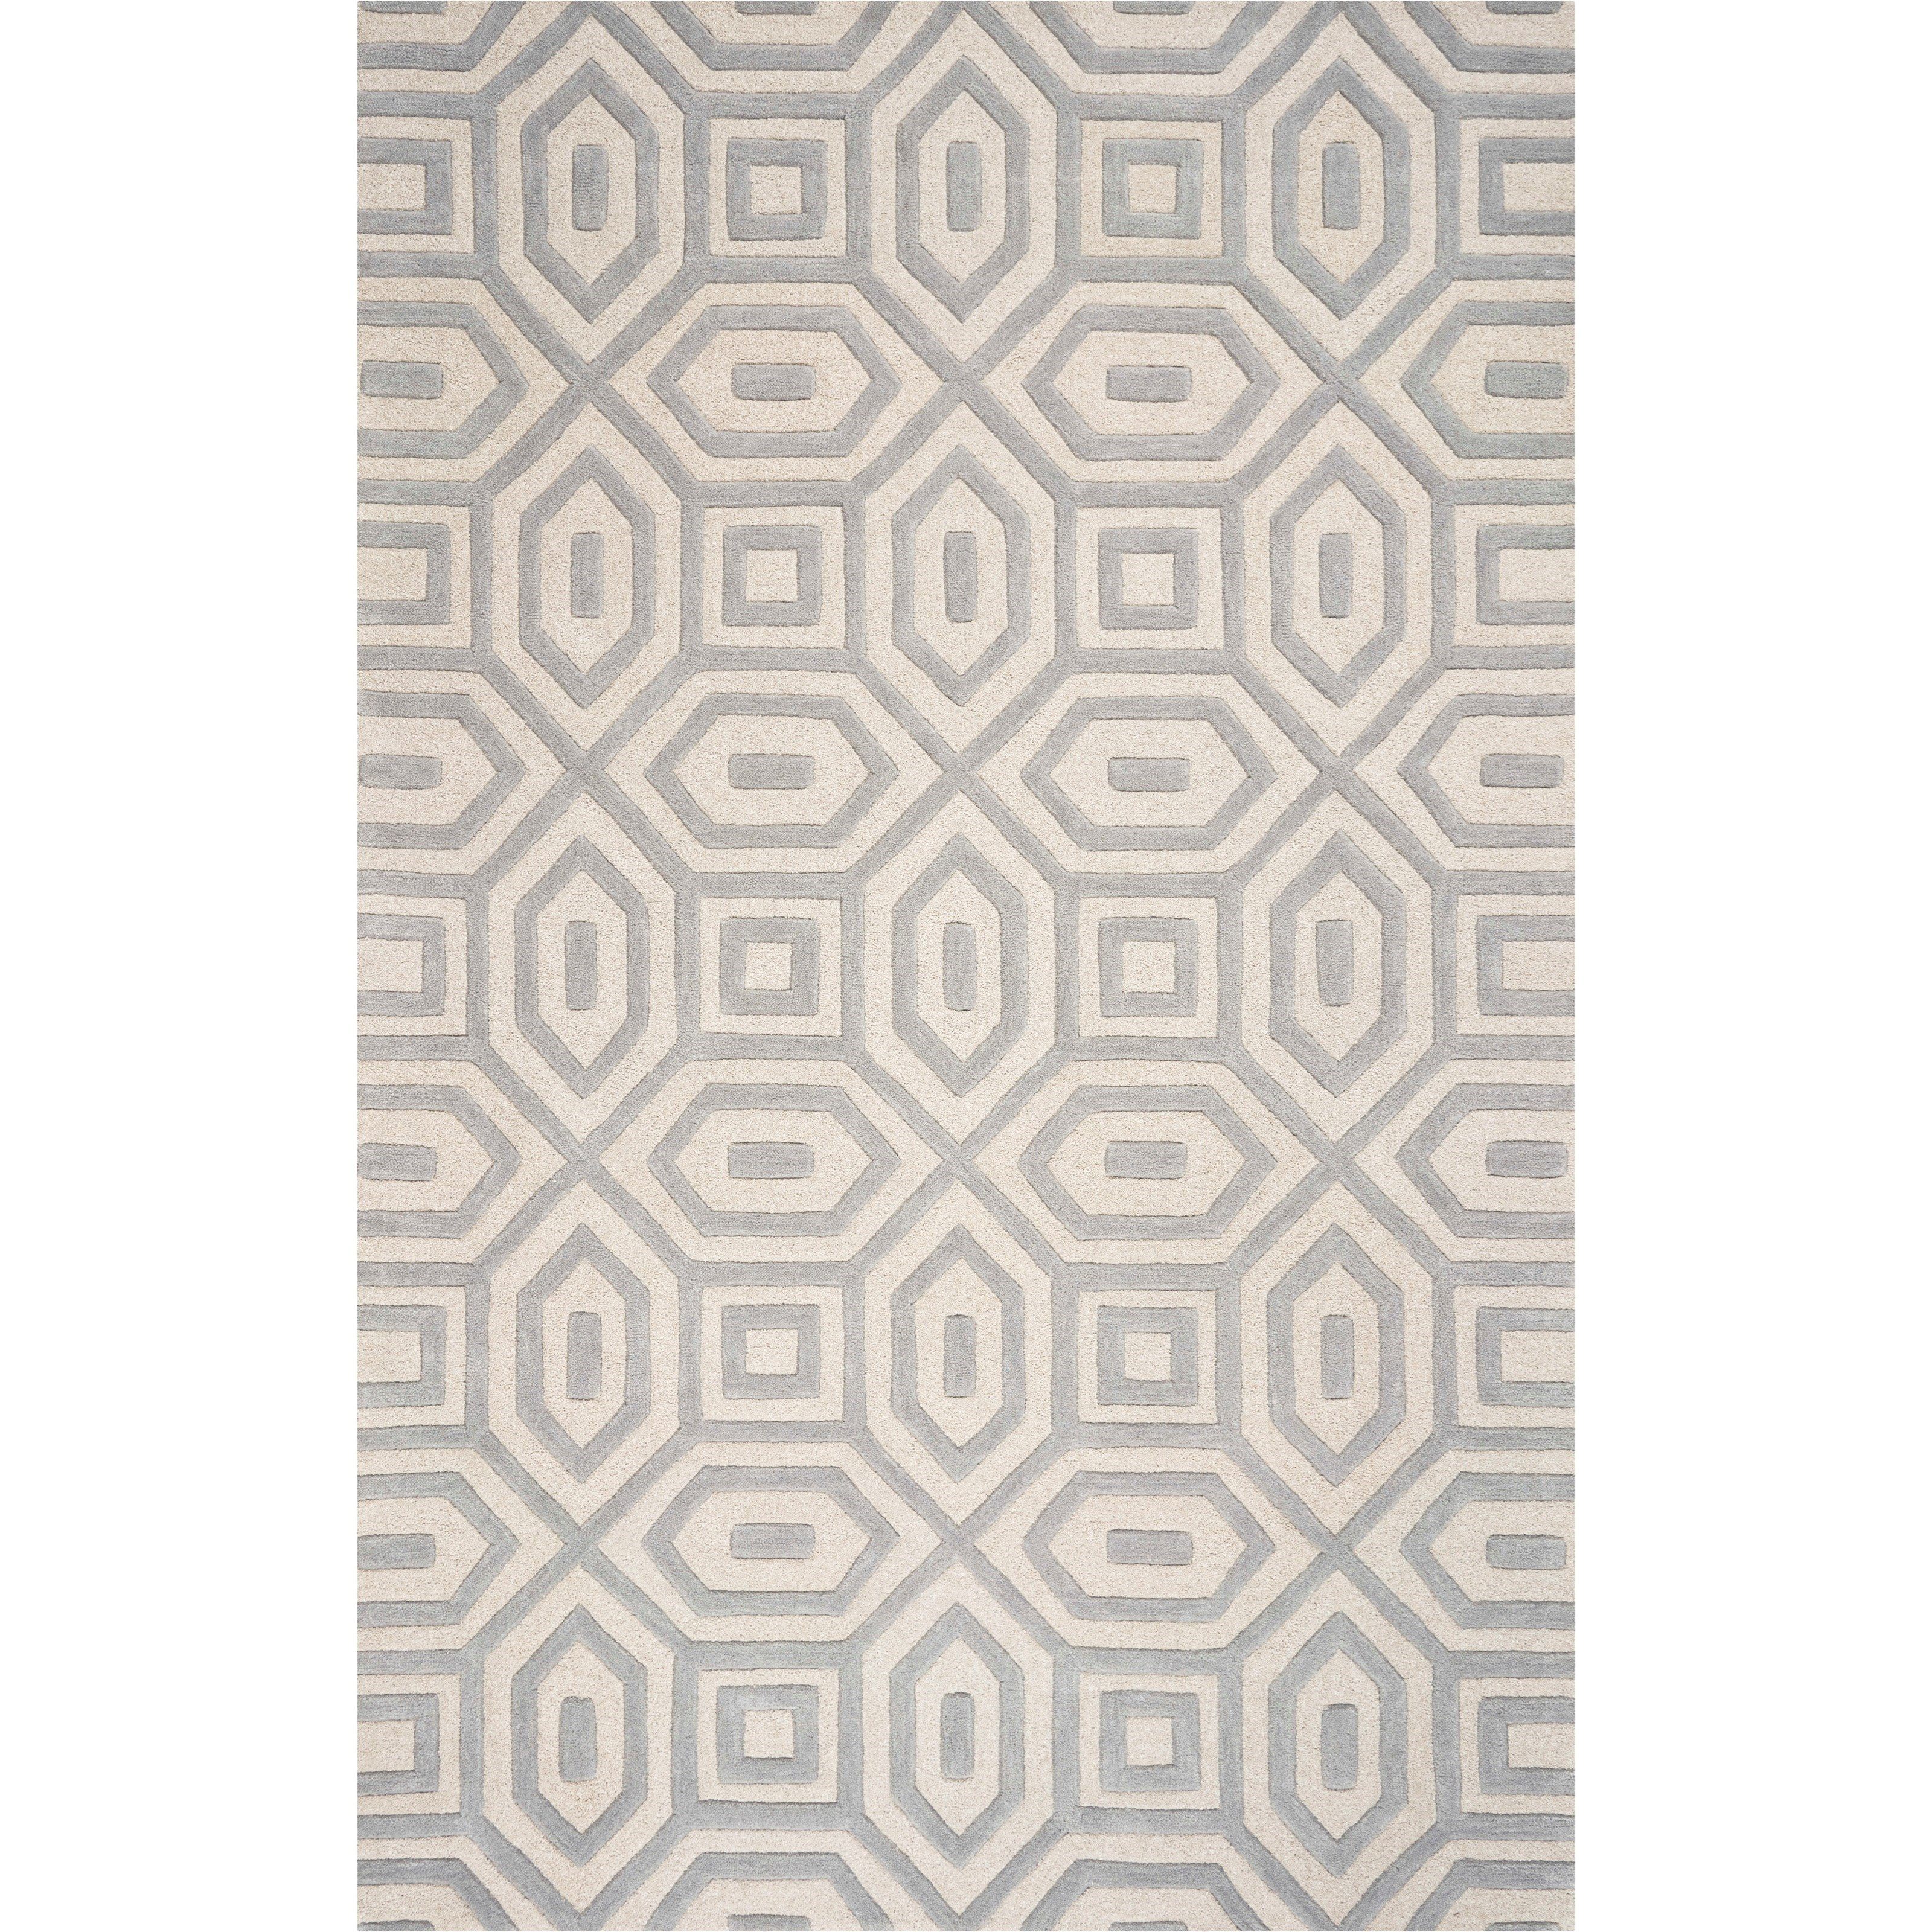 Eternity 5' x 8' Grey Escape Rug by Kas at Zak's Home